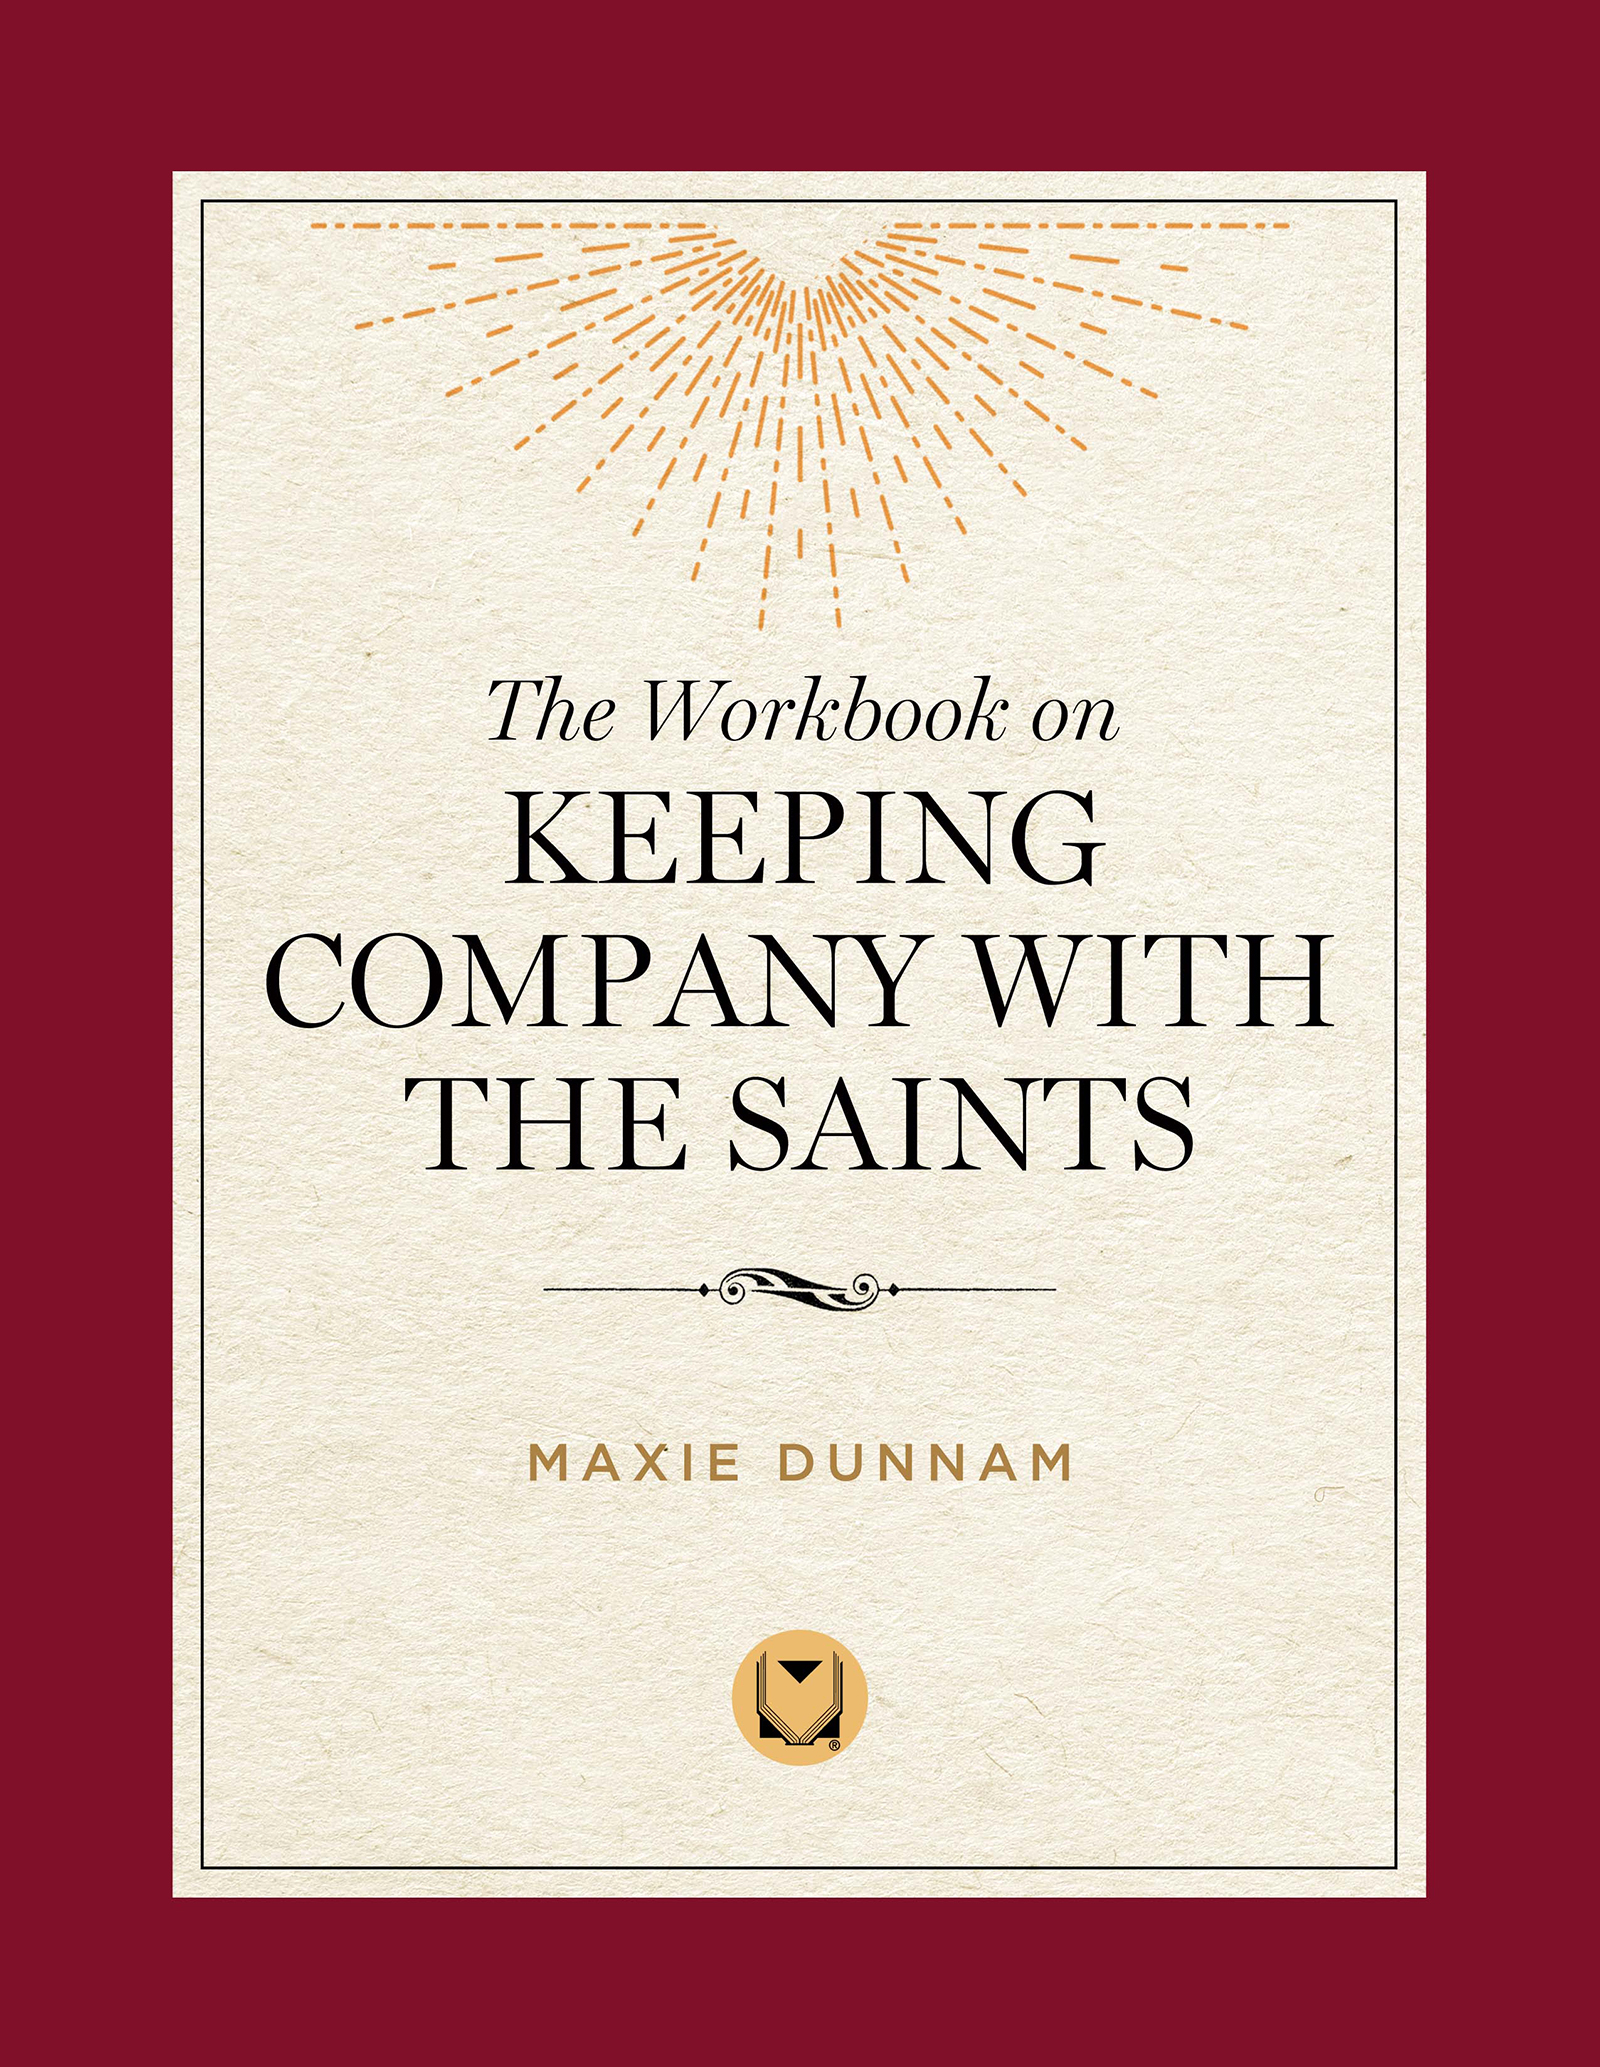 The Workbook on Keeping Company with the Saints